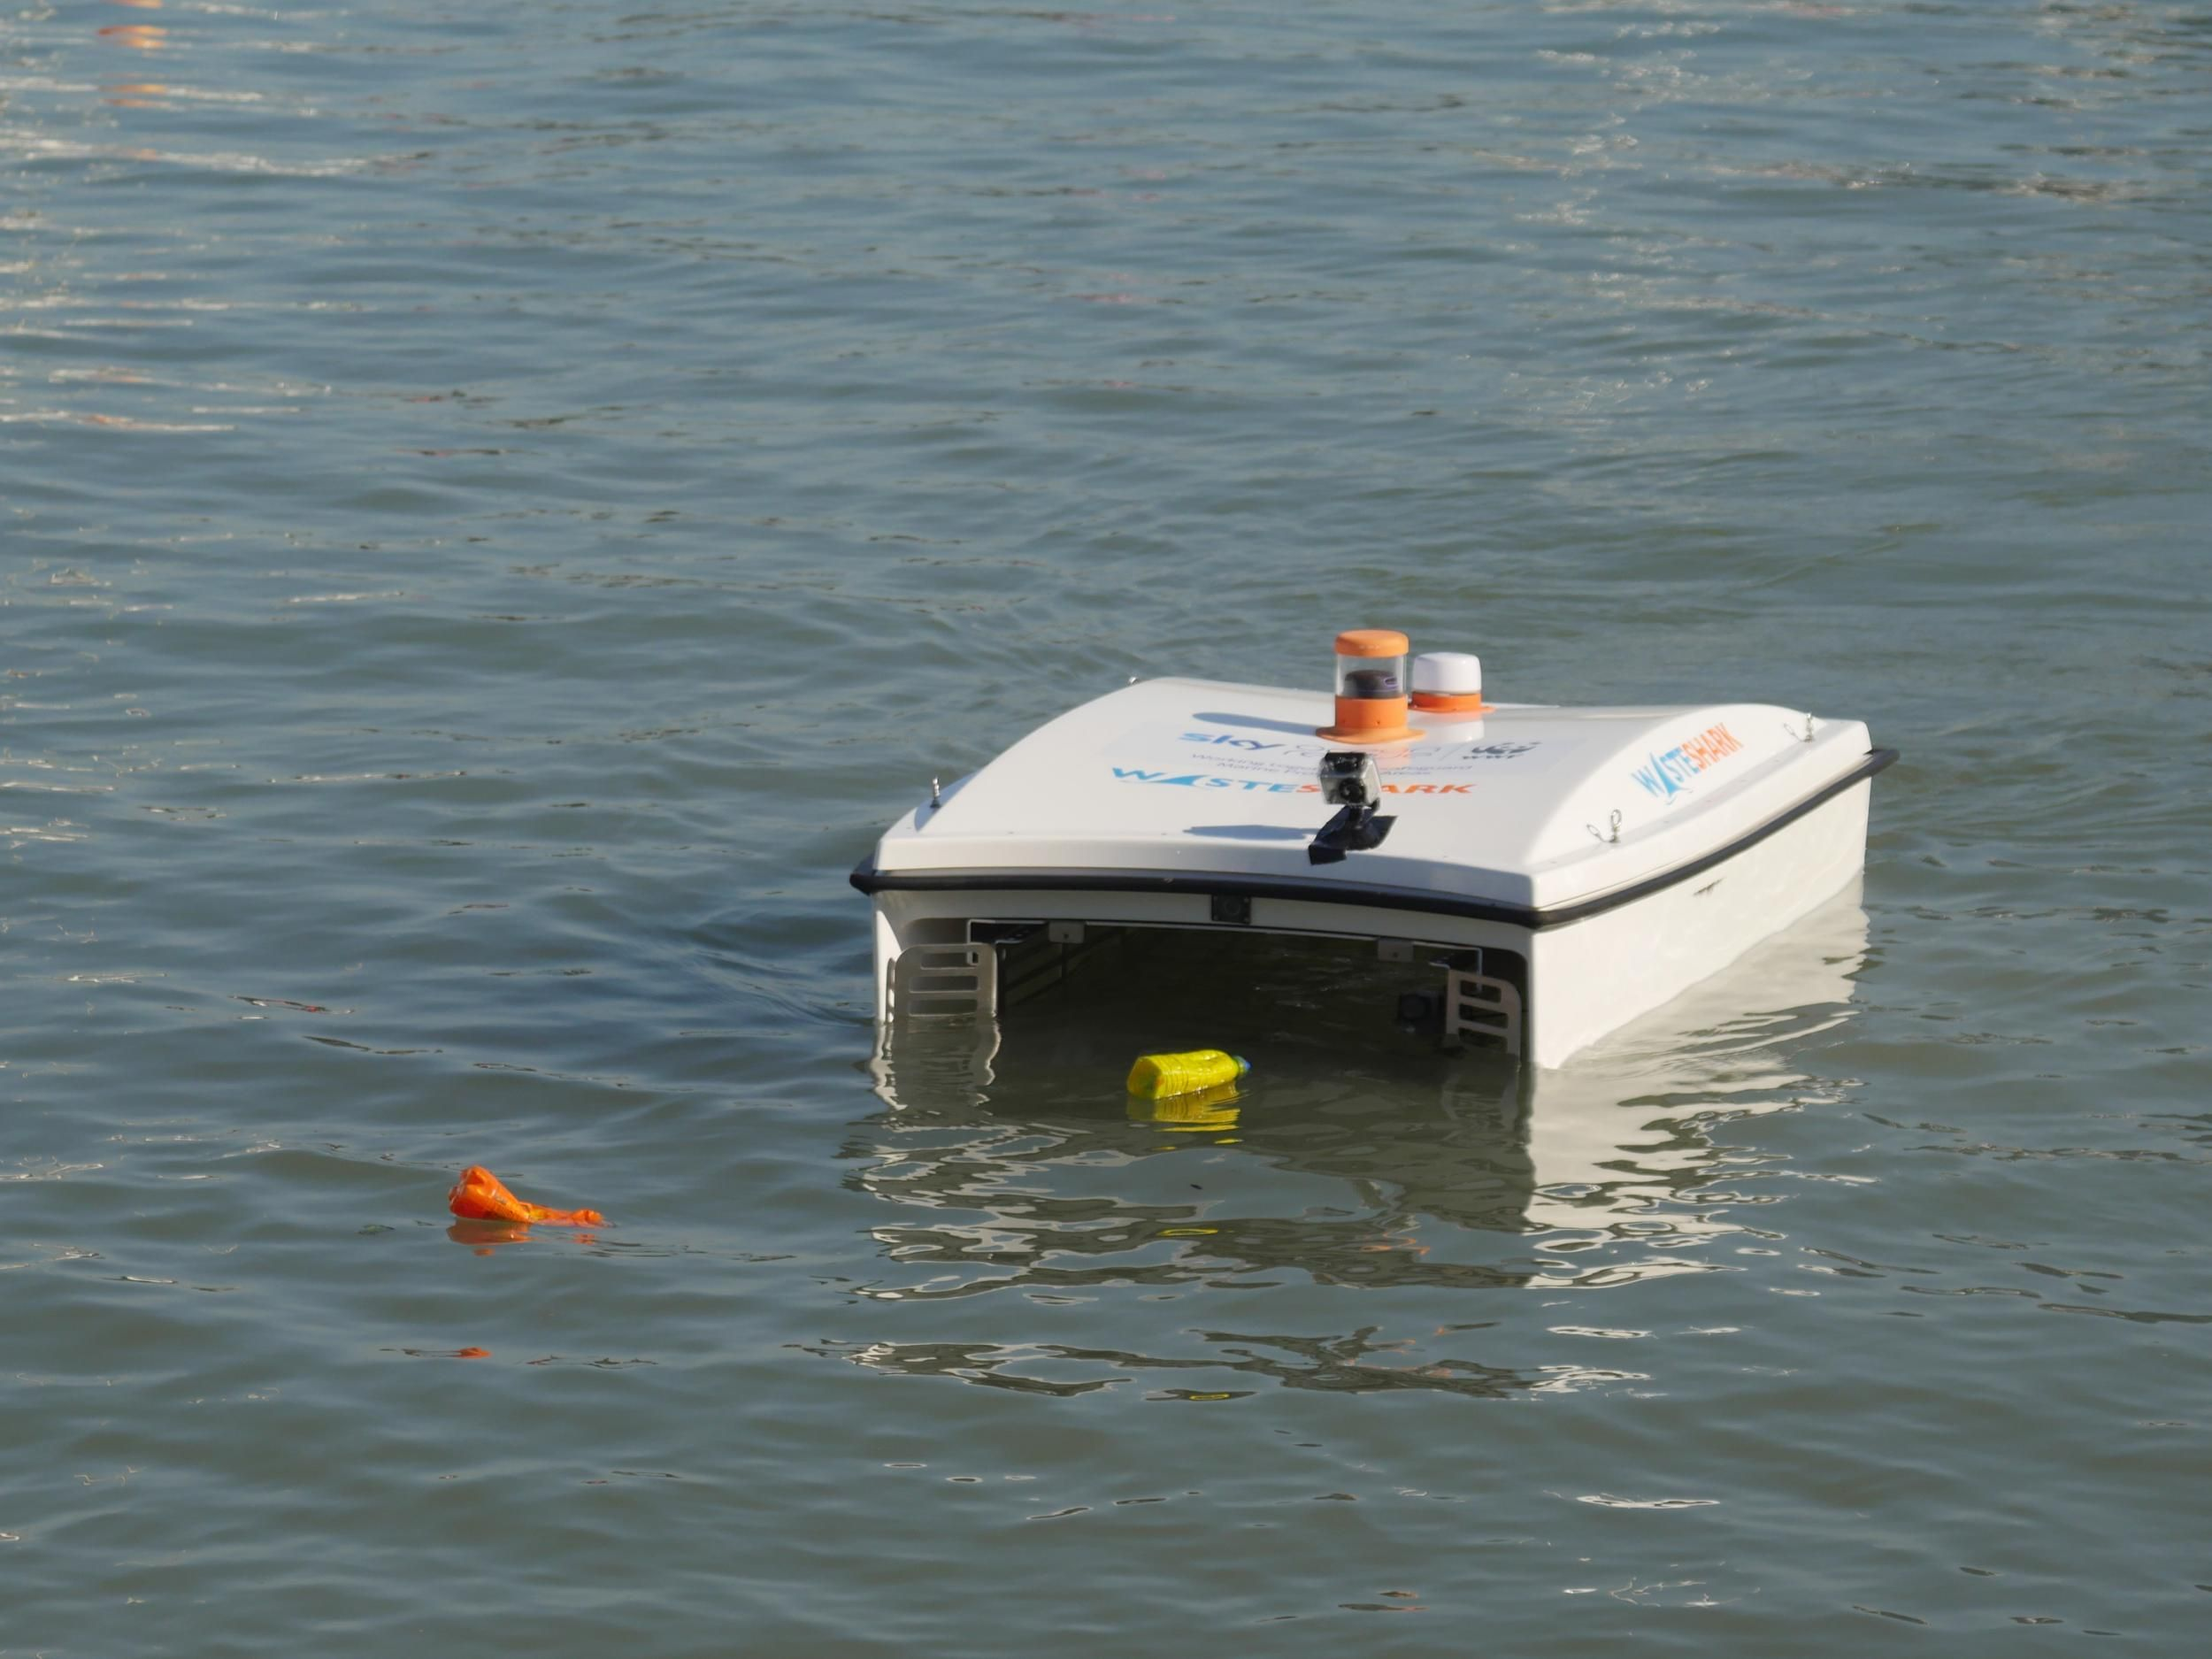 Robot shark that eats plastic waste launched to tackle